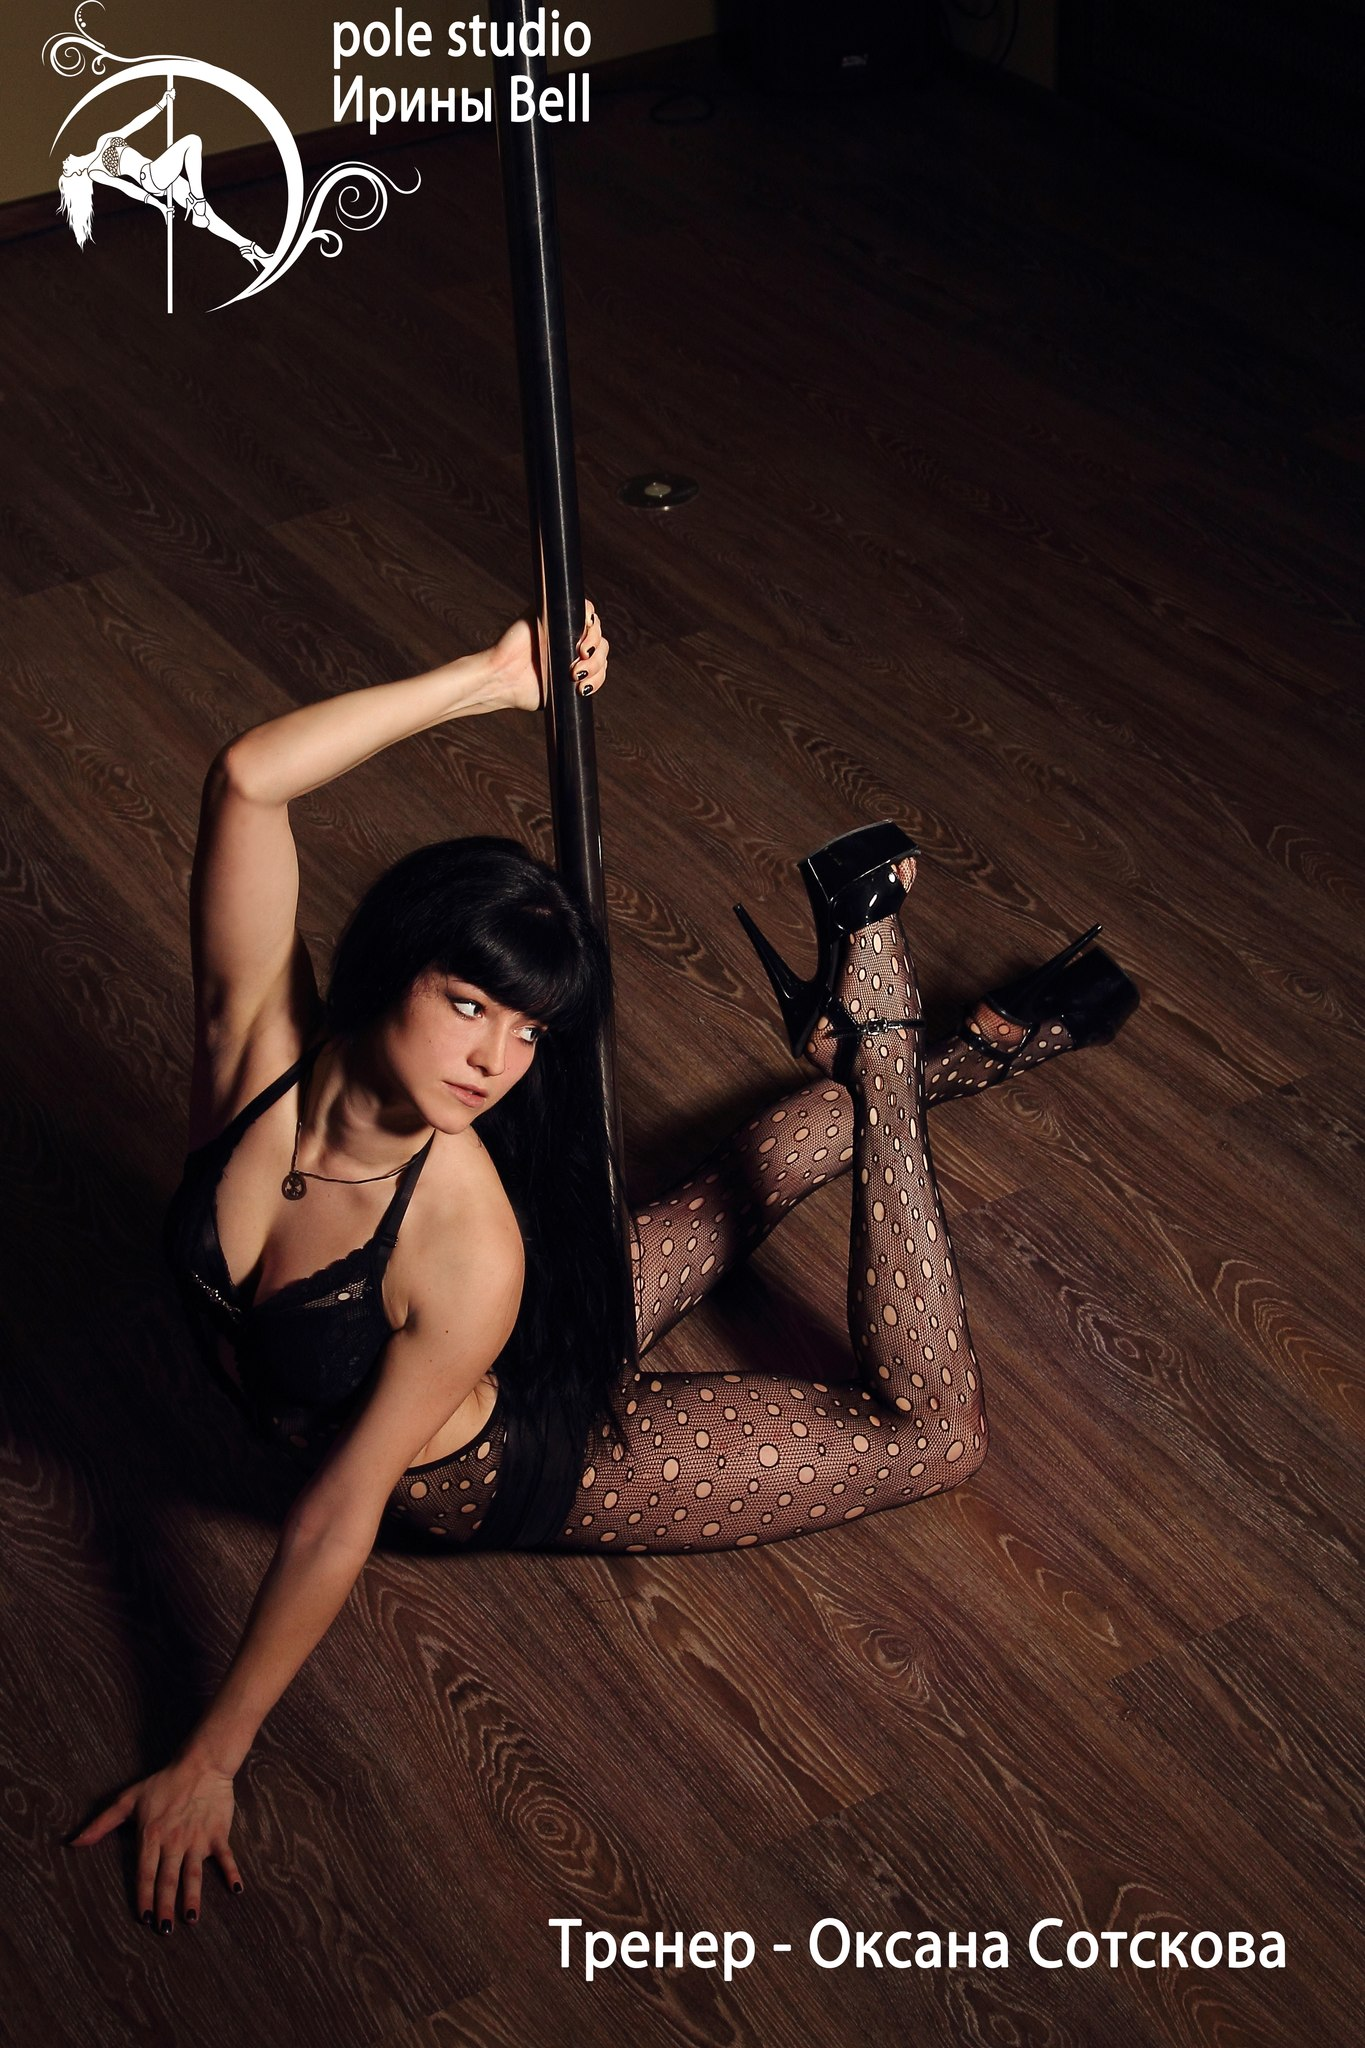 Pole dance studio Irina Bell in Rostov-on-Don